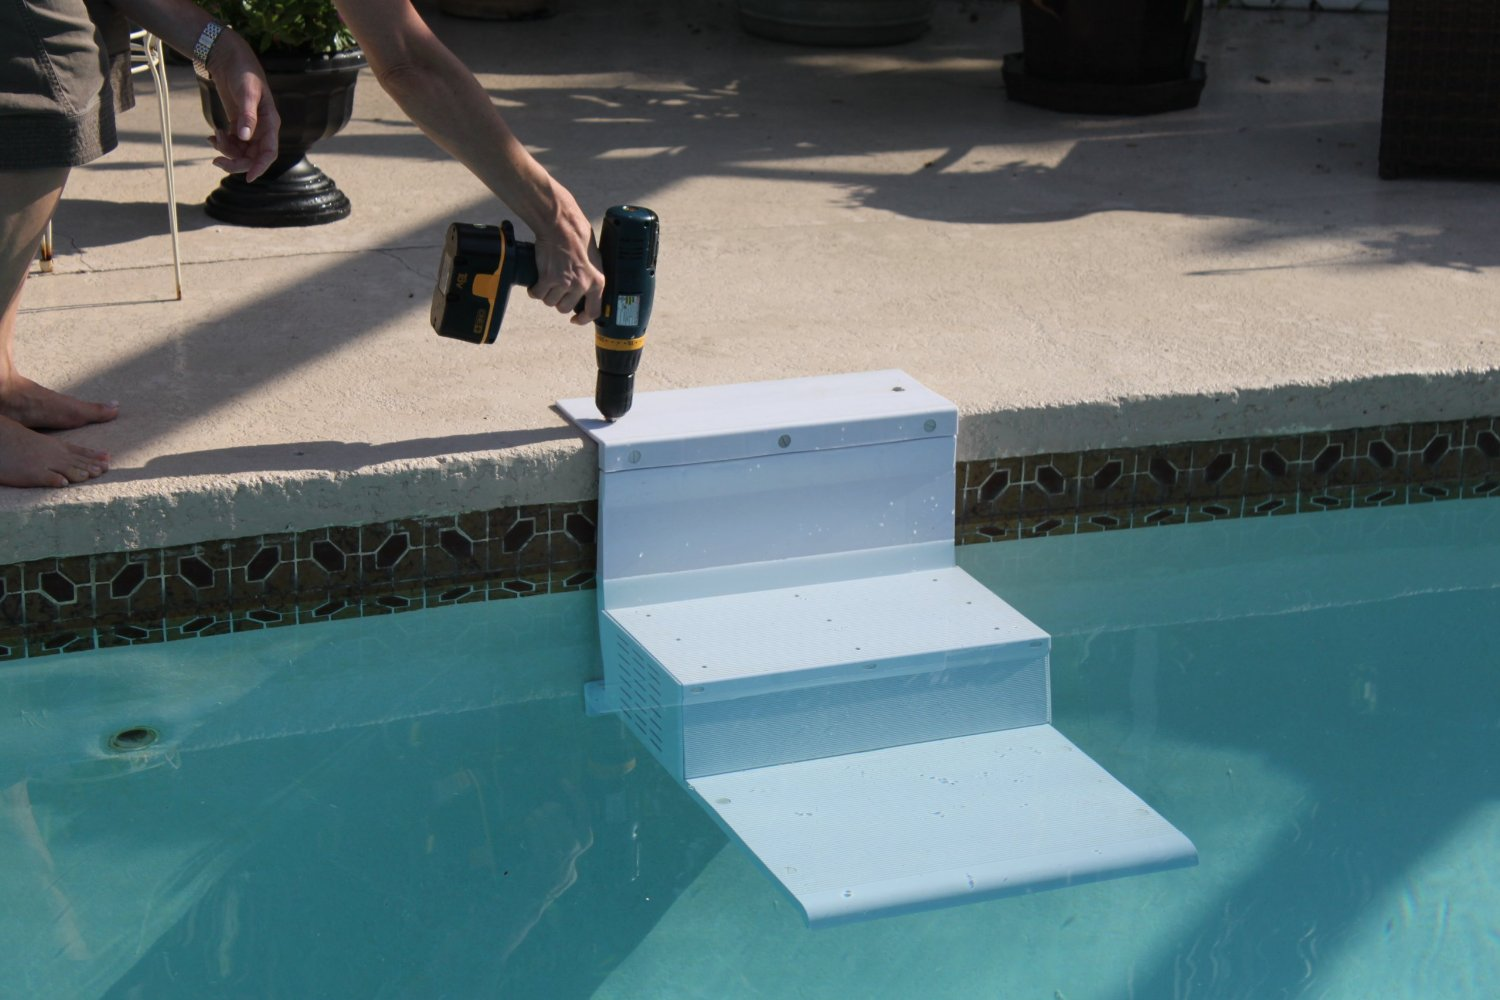 Stairs For Dogsgive Your Dog A Helping Hand Pool Steps